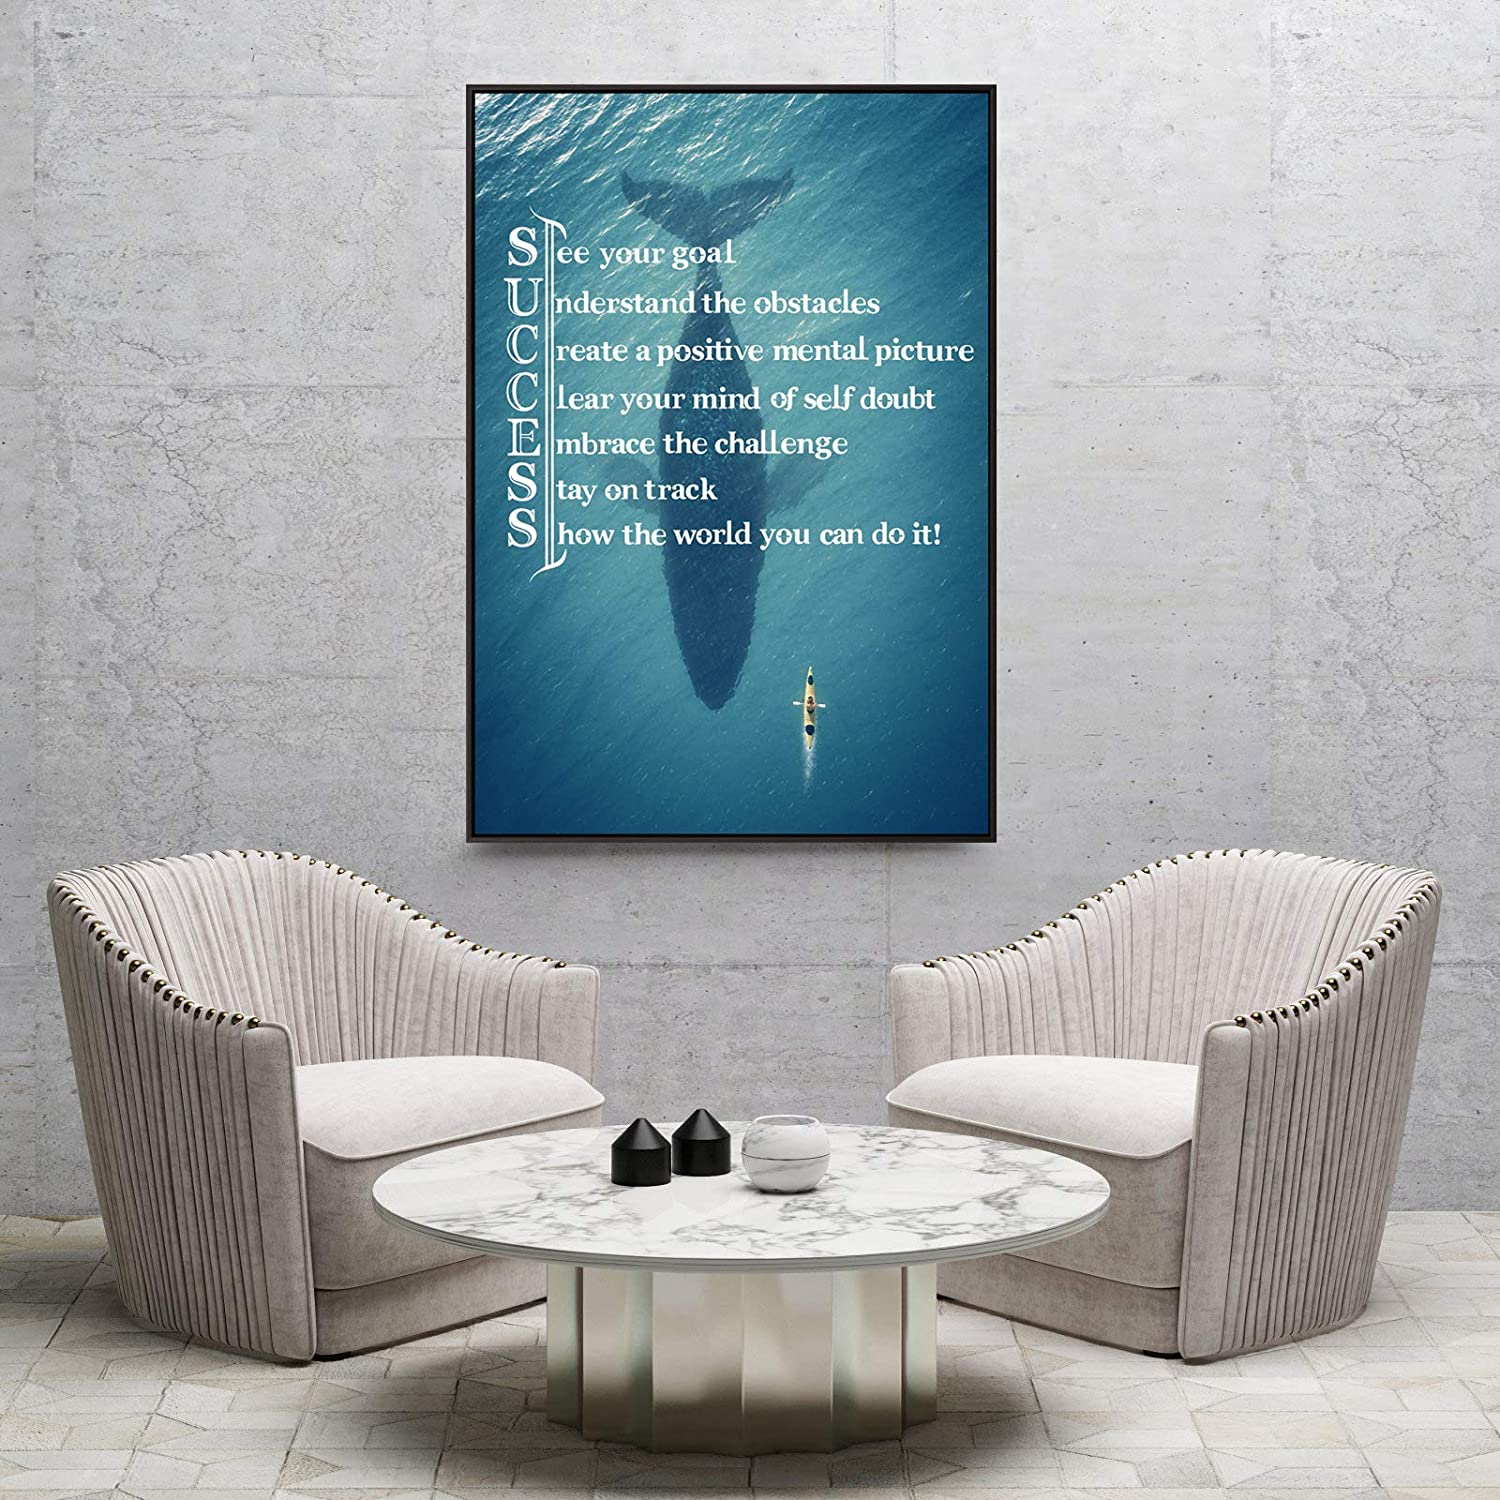 01 Not Yours, 24x32 Visual Art Decor Success Inspirational Quote Creative Ocean Challenge Limitation Canvas Poster Motivational Motto Framed Giclee Prints Home Office Boy Bedroom Wall Decoration